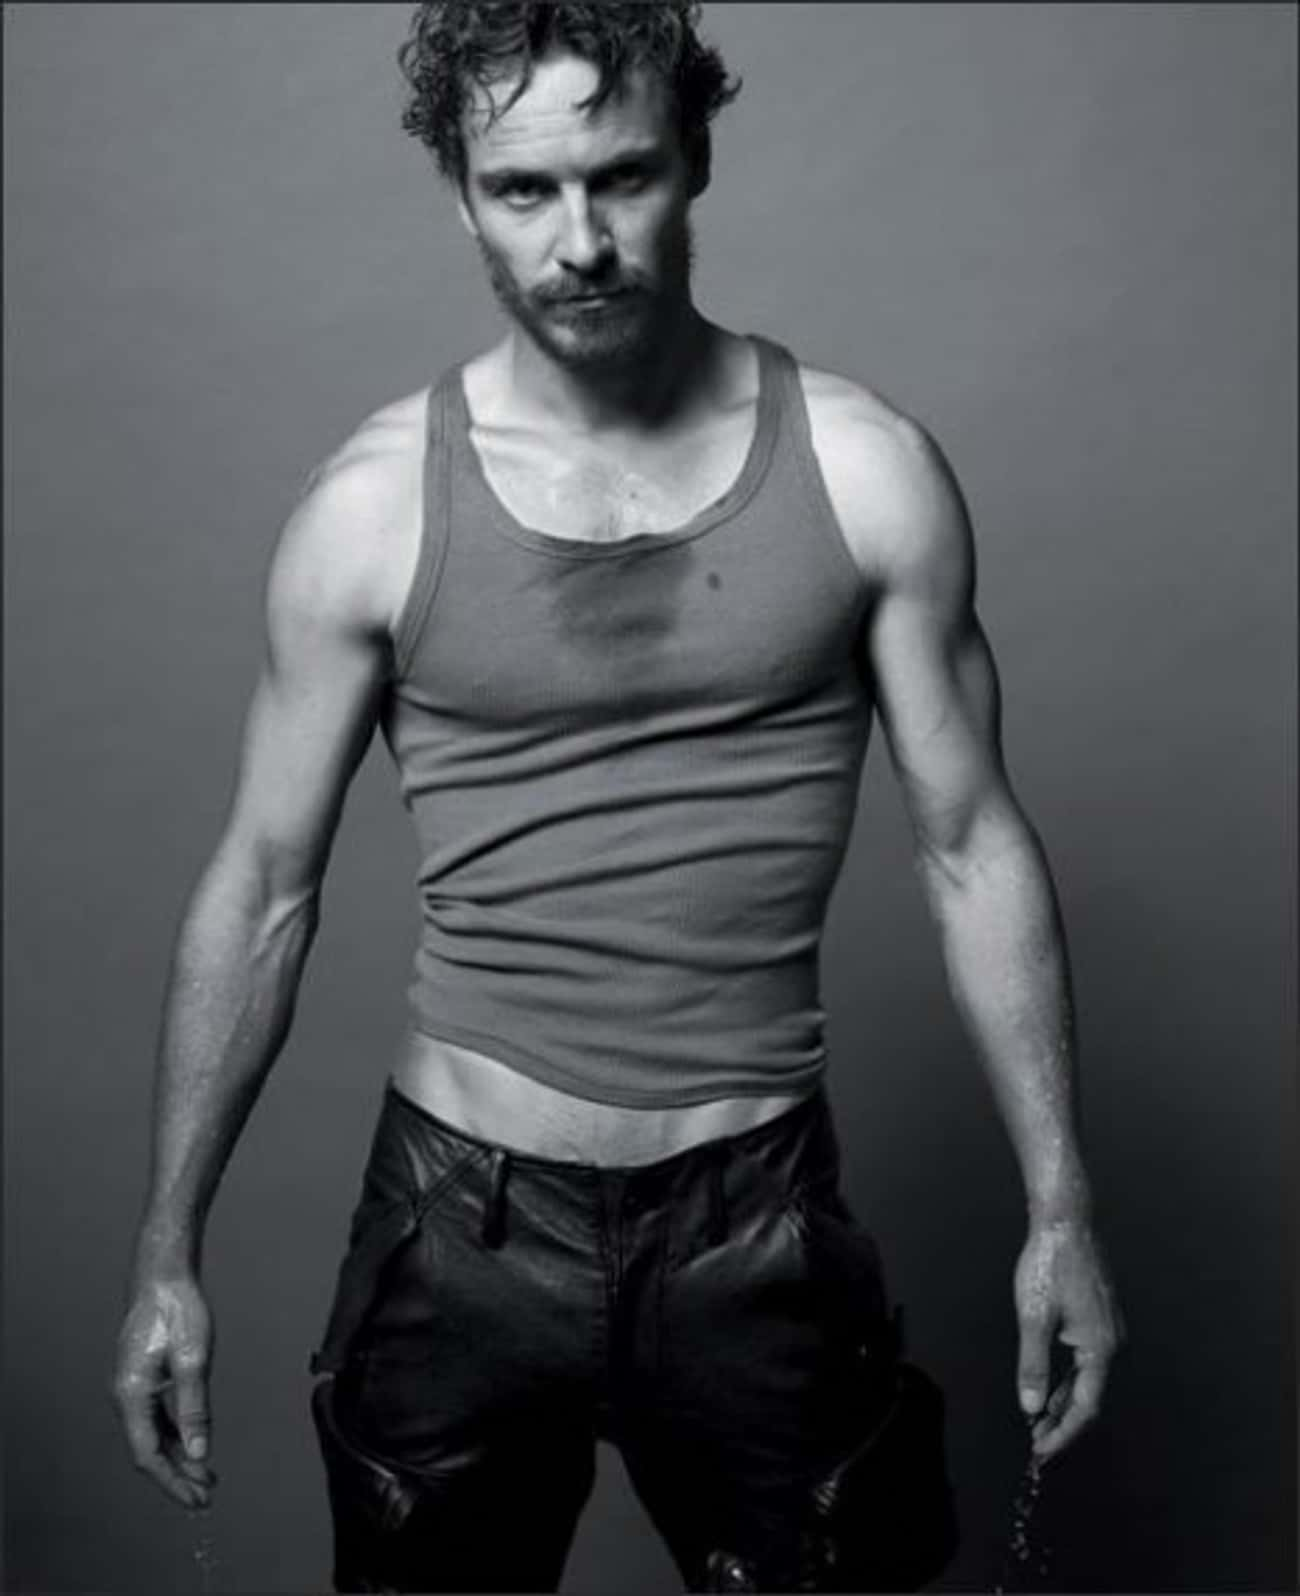 Michael Fassbender in Cropped Sleeveless